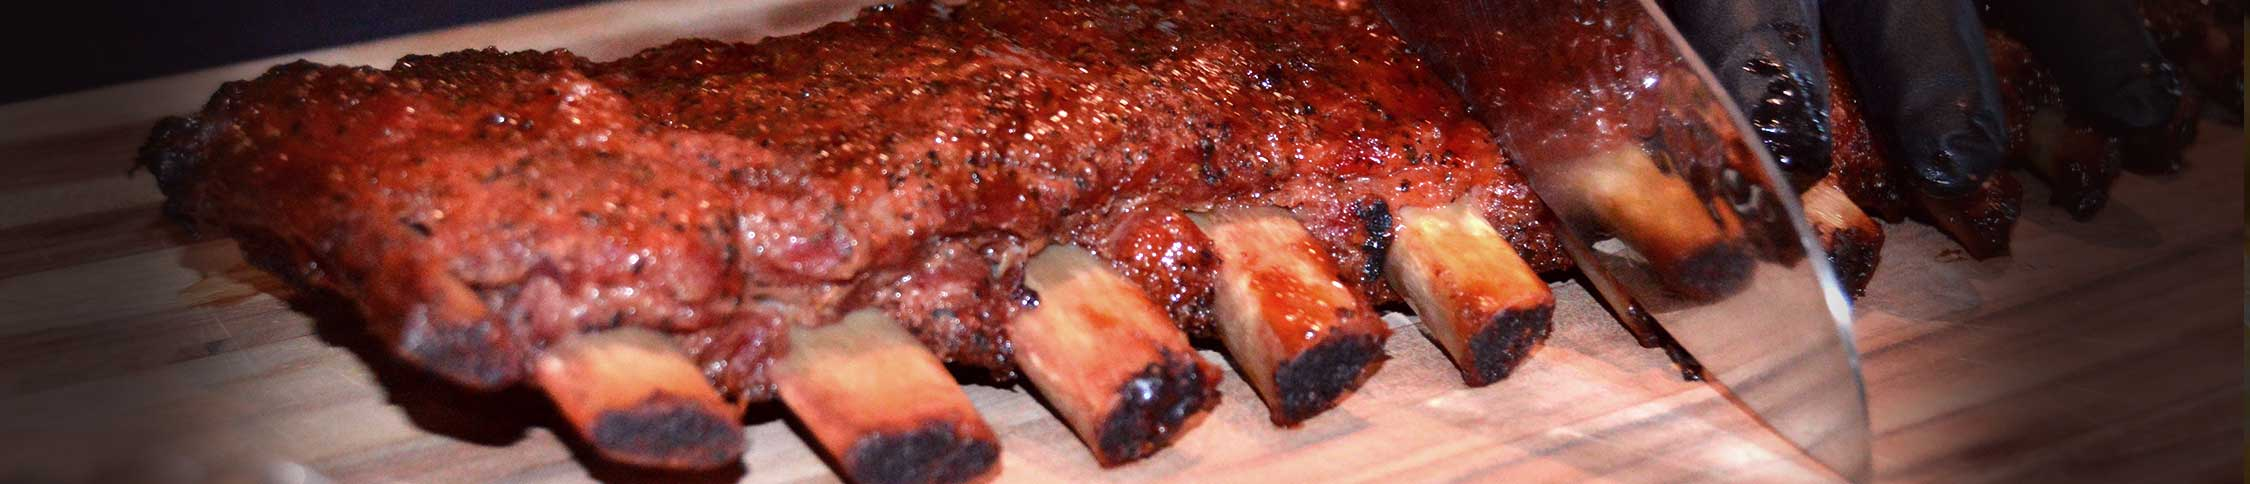 St. Louis style ribs being sliced